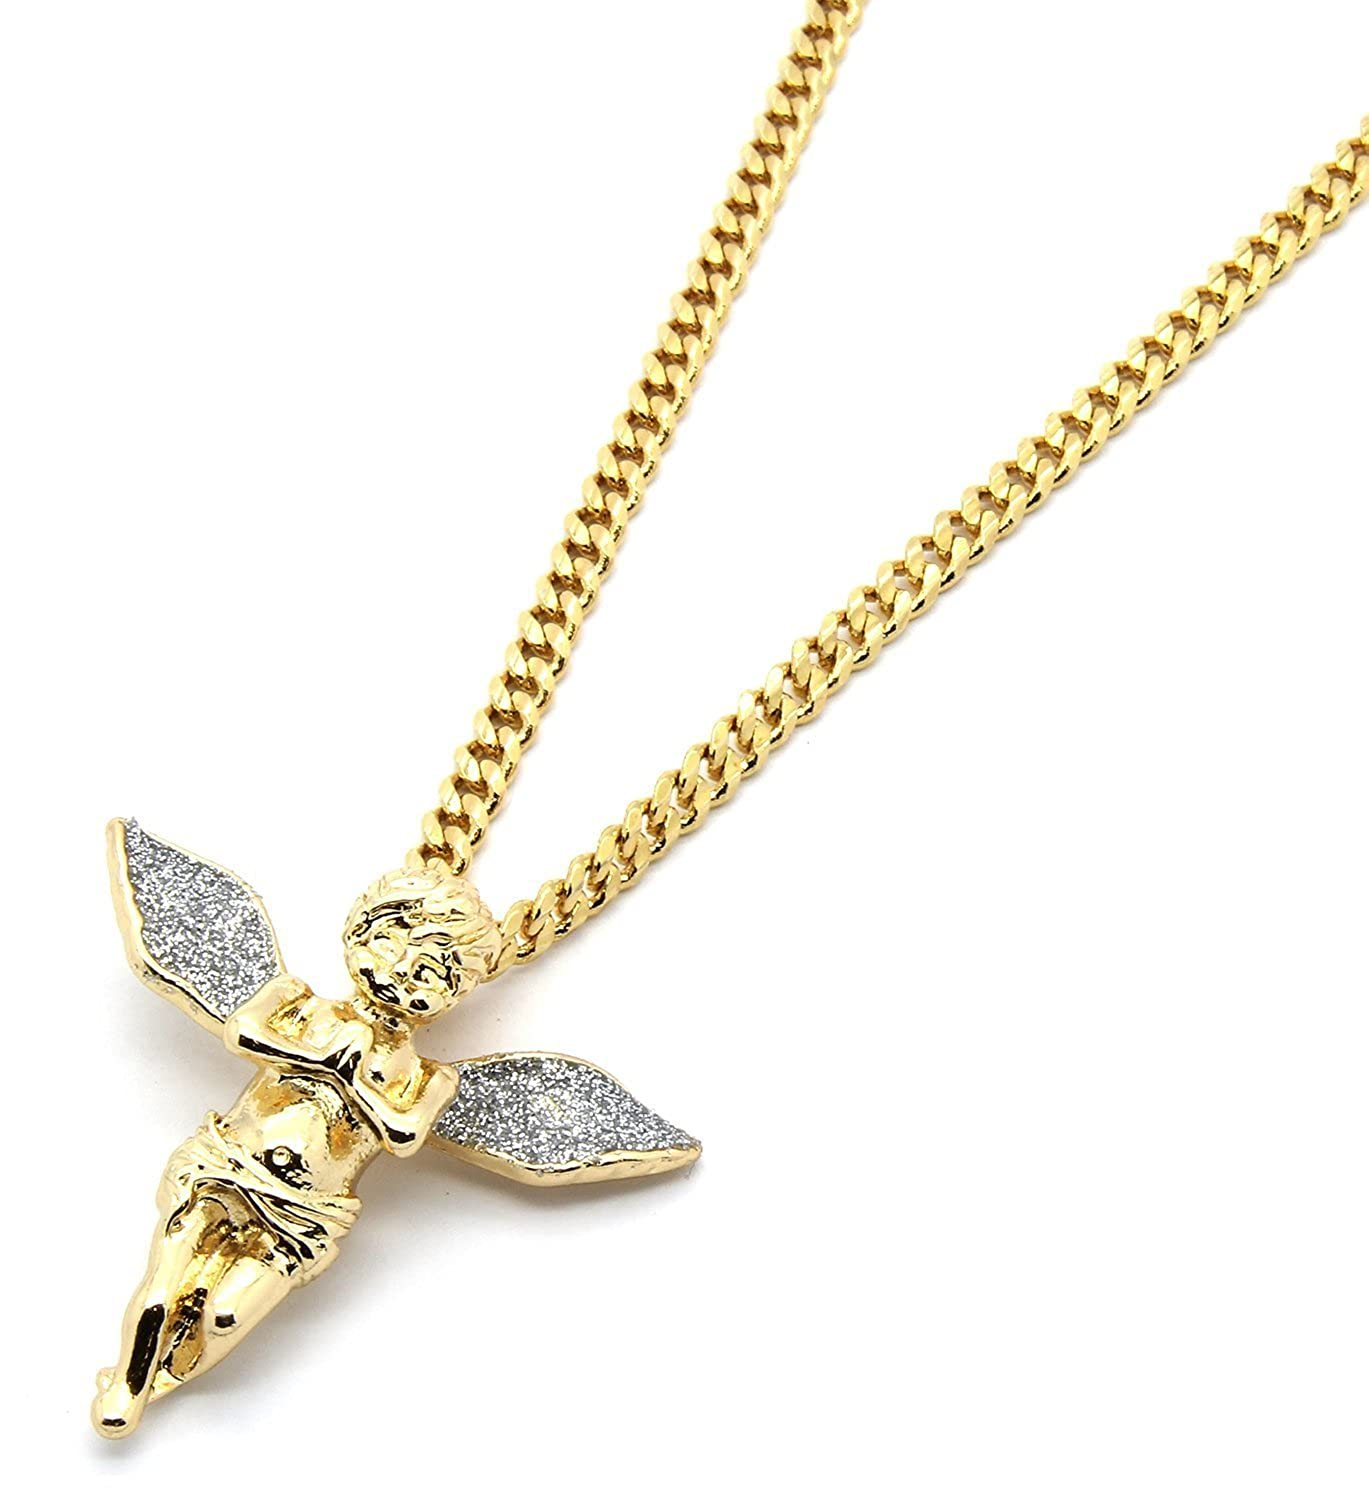 Gold tone silver stardust long wings angel pendant hip hop with 3mm gold tone silver stardust long wings angel pendant hip hop with 3mm 30 cuban chain amazon aloadofball Gallery